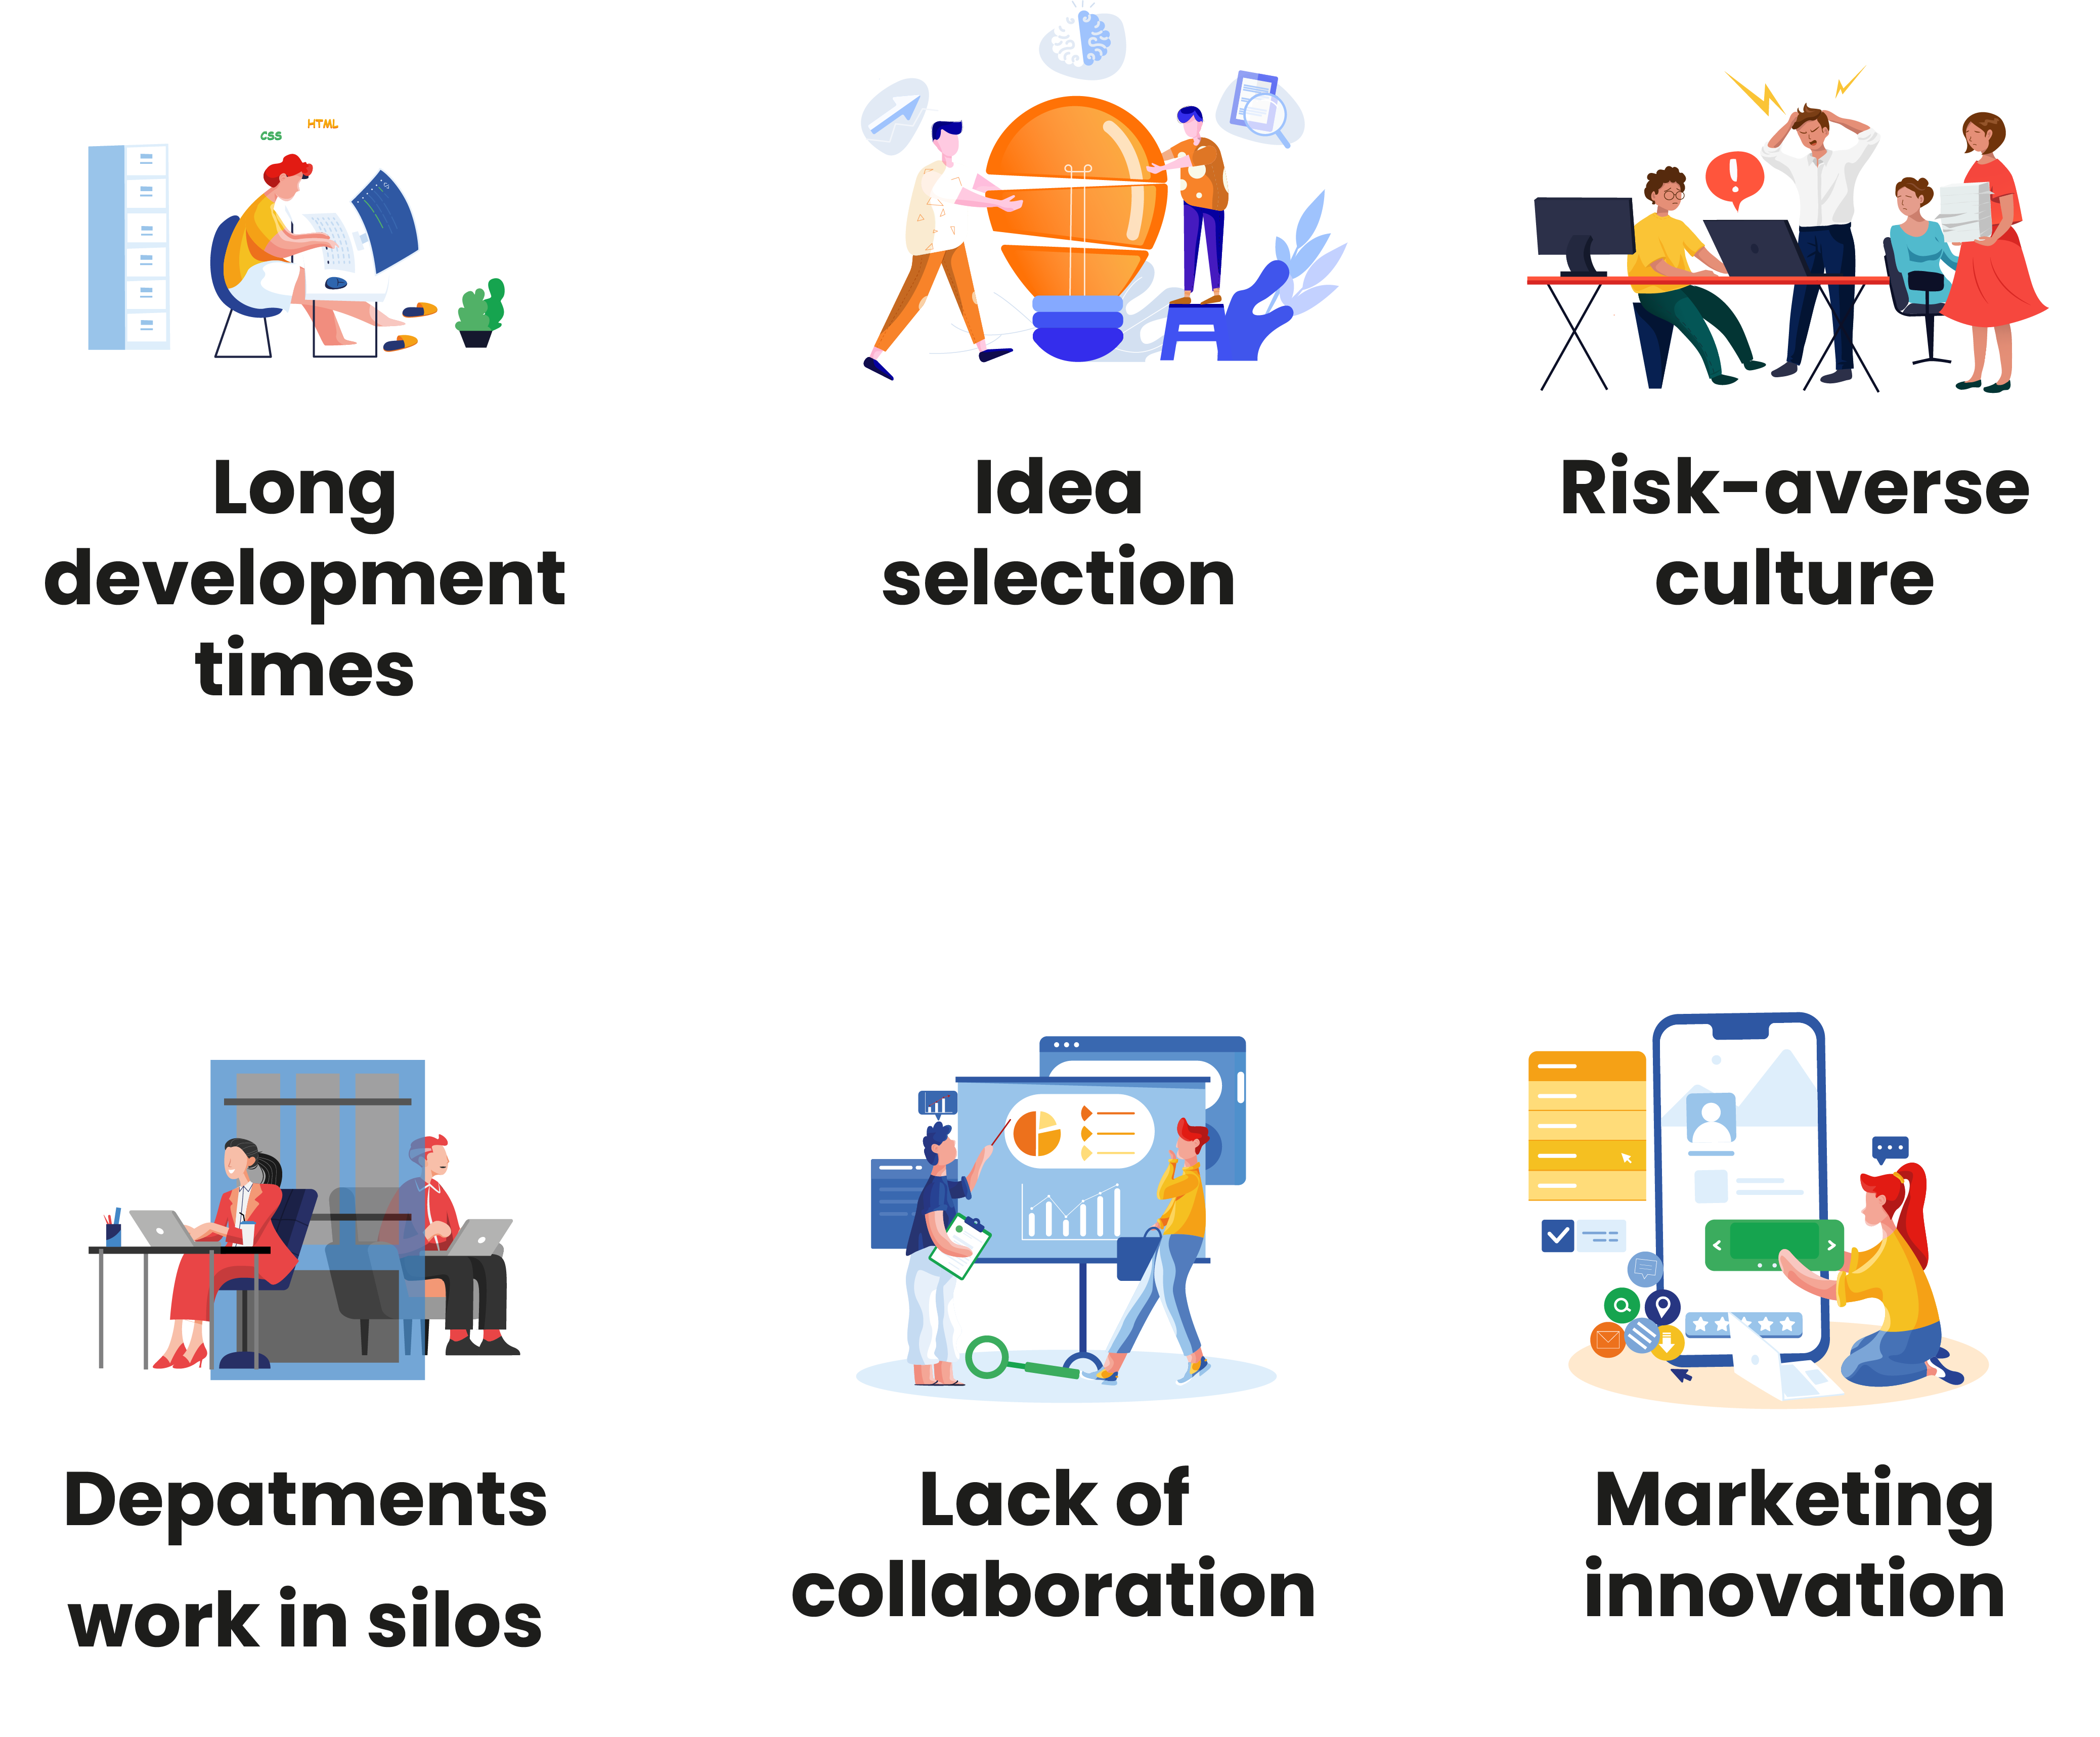 6 areas as challenges faced by organisations when innovating